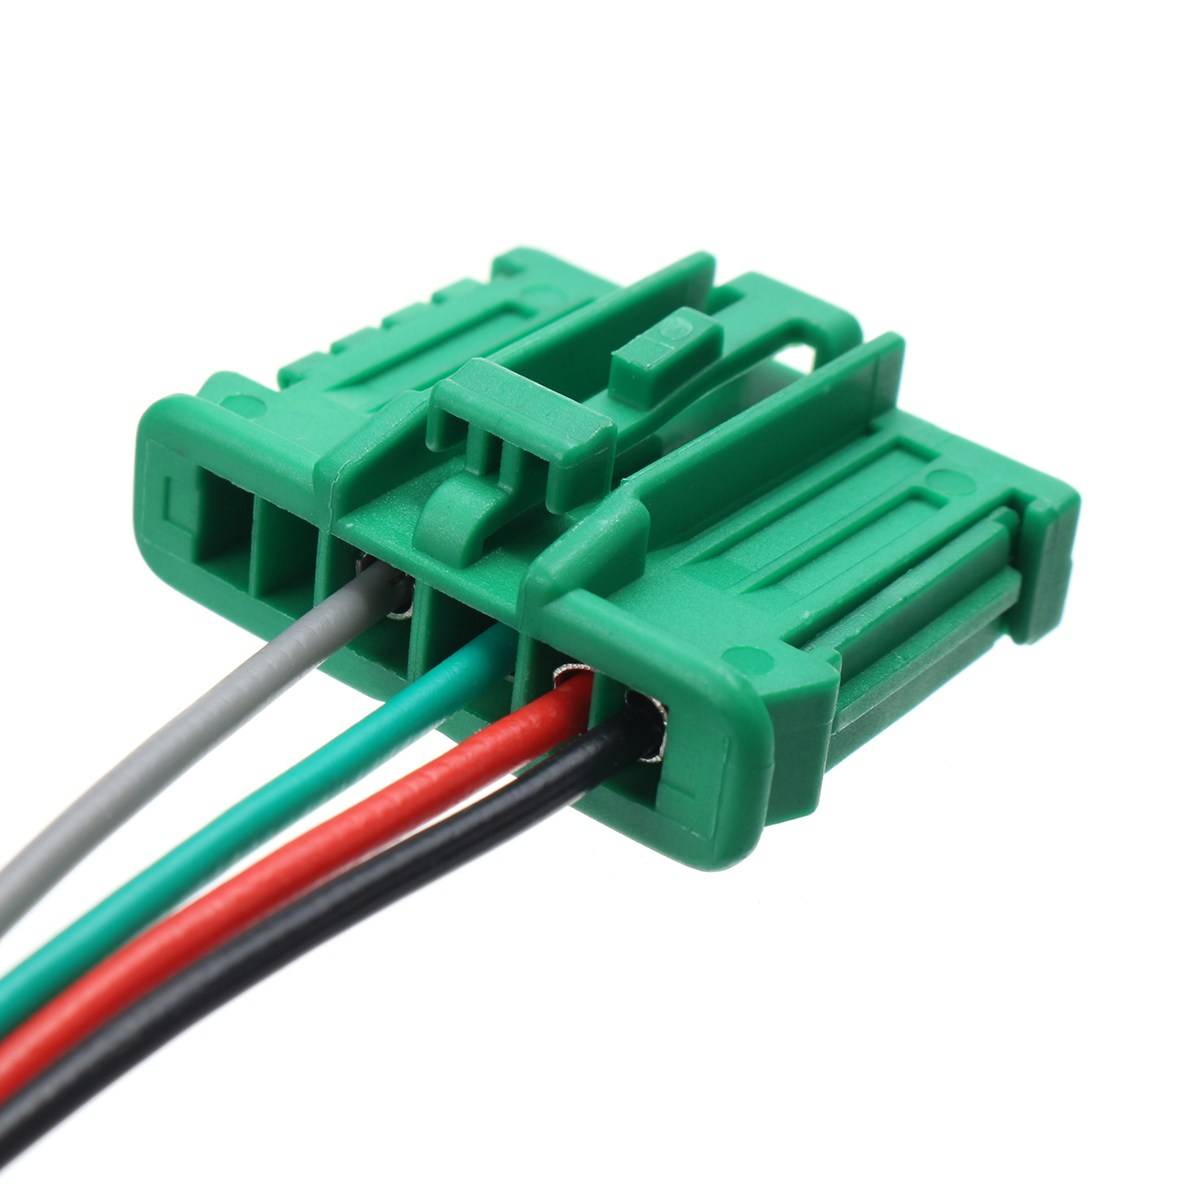 hight resolution of kroak heater resistor wiring harness loom 27150ed70b for citroen for peugeot for for renault for megane for scenic in cables adapters sockets from